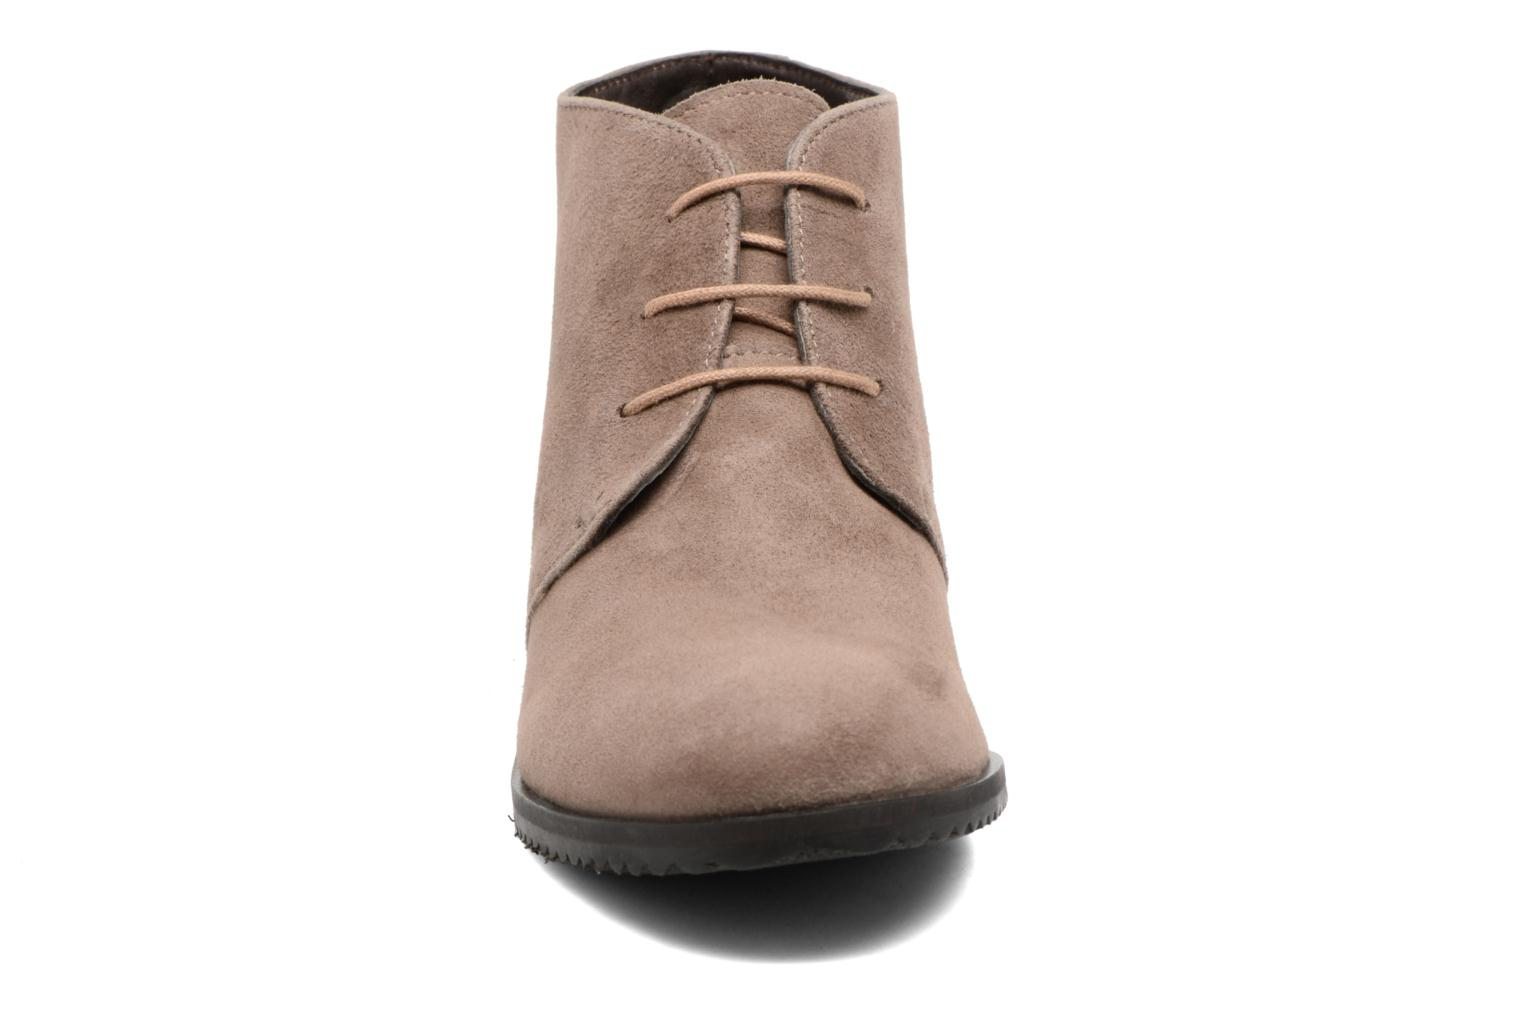 clair Puppies Colali Hush Puppies clair Colali Marron Hush Puppies Hush Marron Marron Hush clair Colali wYHItq